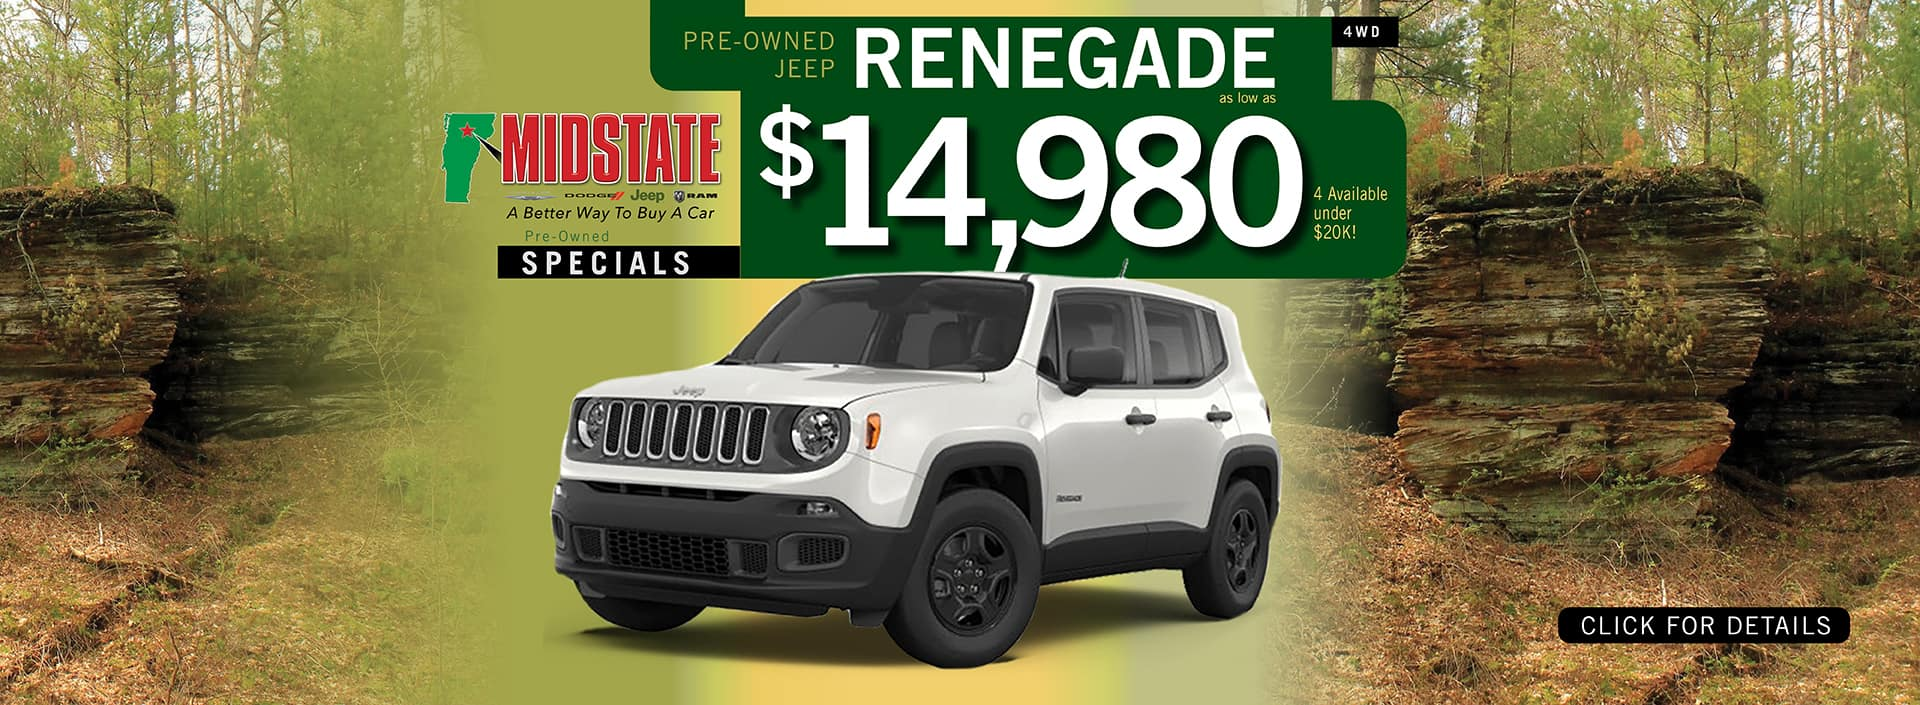 Used Jeep Renegade Pre-Owned Offer | Barre, VT